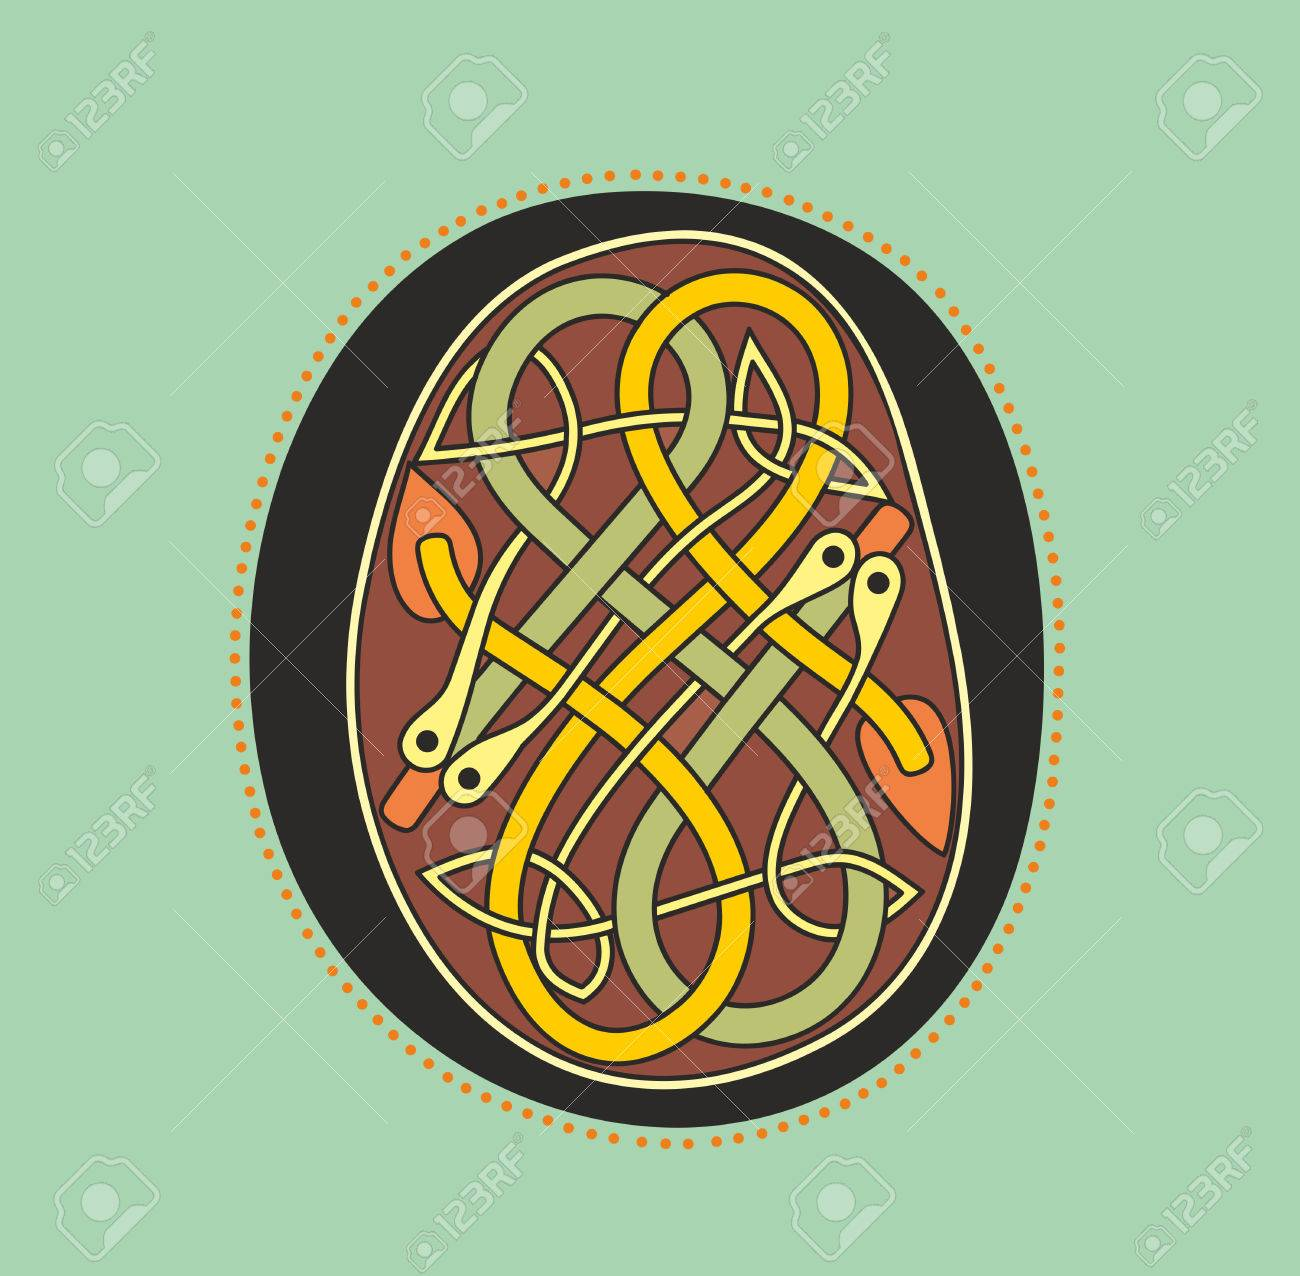 Decorative Ornamental Initial Letter O In Celtic Style Form Of Serpentine Knot Like An Illustration